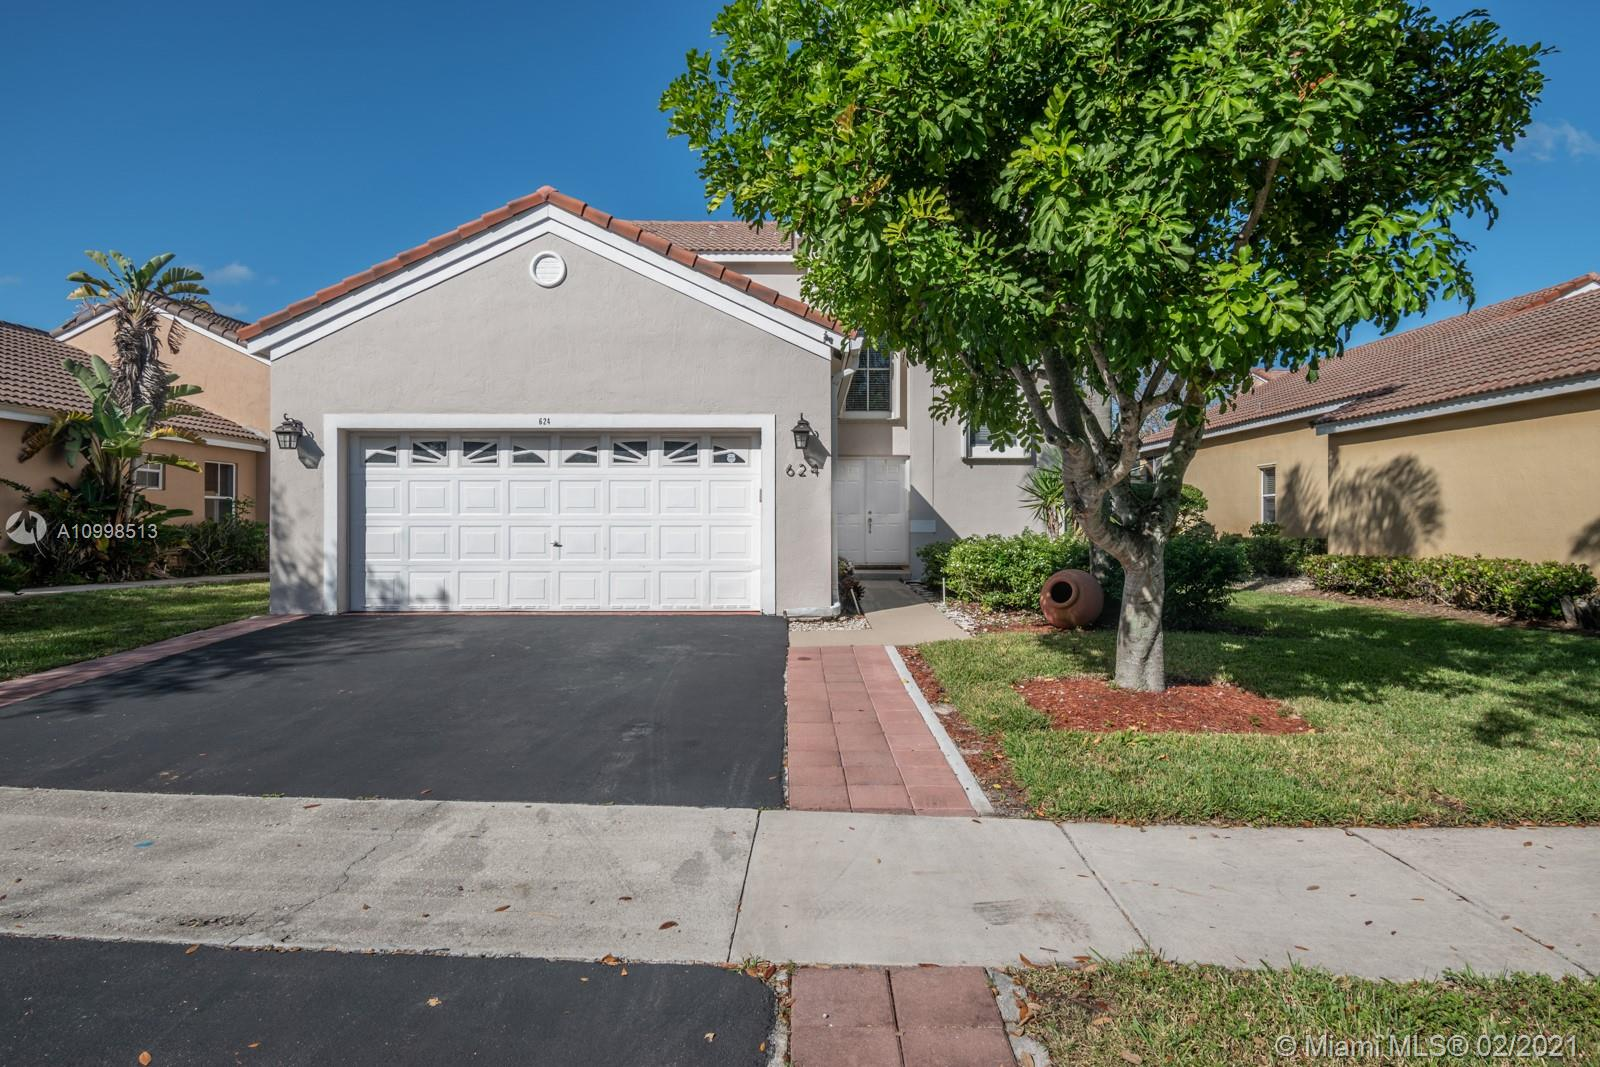 Beautiful 4 bedroom 3.5 bath home in amazing North Lakes Community. Property has updated Kitchen and baths. It is an Open Layout concept. Enjoy the huge kitchen island to entertain your guest. Huge Master bedroom downstairs. The Master bedroom can be separated from the rest of the house and rented out if you wish to help with the mortgage cost. Nice walk-in closet in the master bedroom. Master bath has Shower and Tub. Upstairs is water resistant wood laminate. Upstairs bathrooms have also been updated. Outside patio area has pavers to be able to put nice patio furniture or set up a nice BBQ area. Hurricane Impact Shutters in 90% of the windows of the house. 2 Car garage with driveway space for 3 more cars. Walking distance to Eagle Point Elementary.